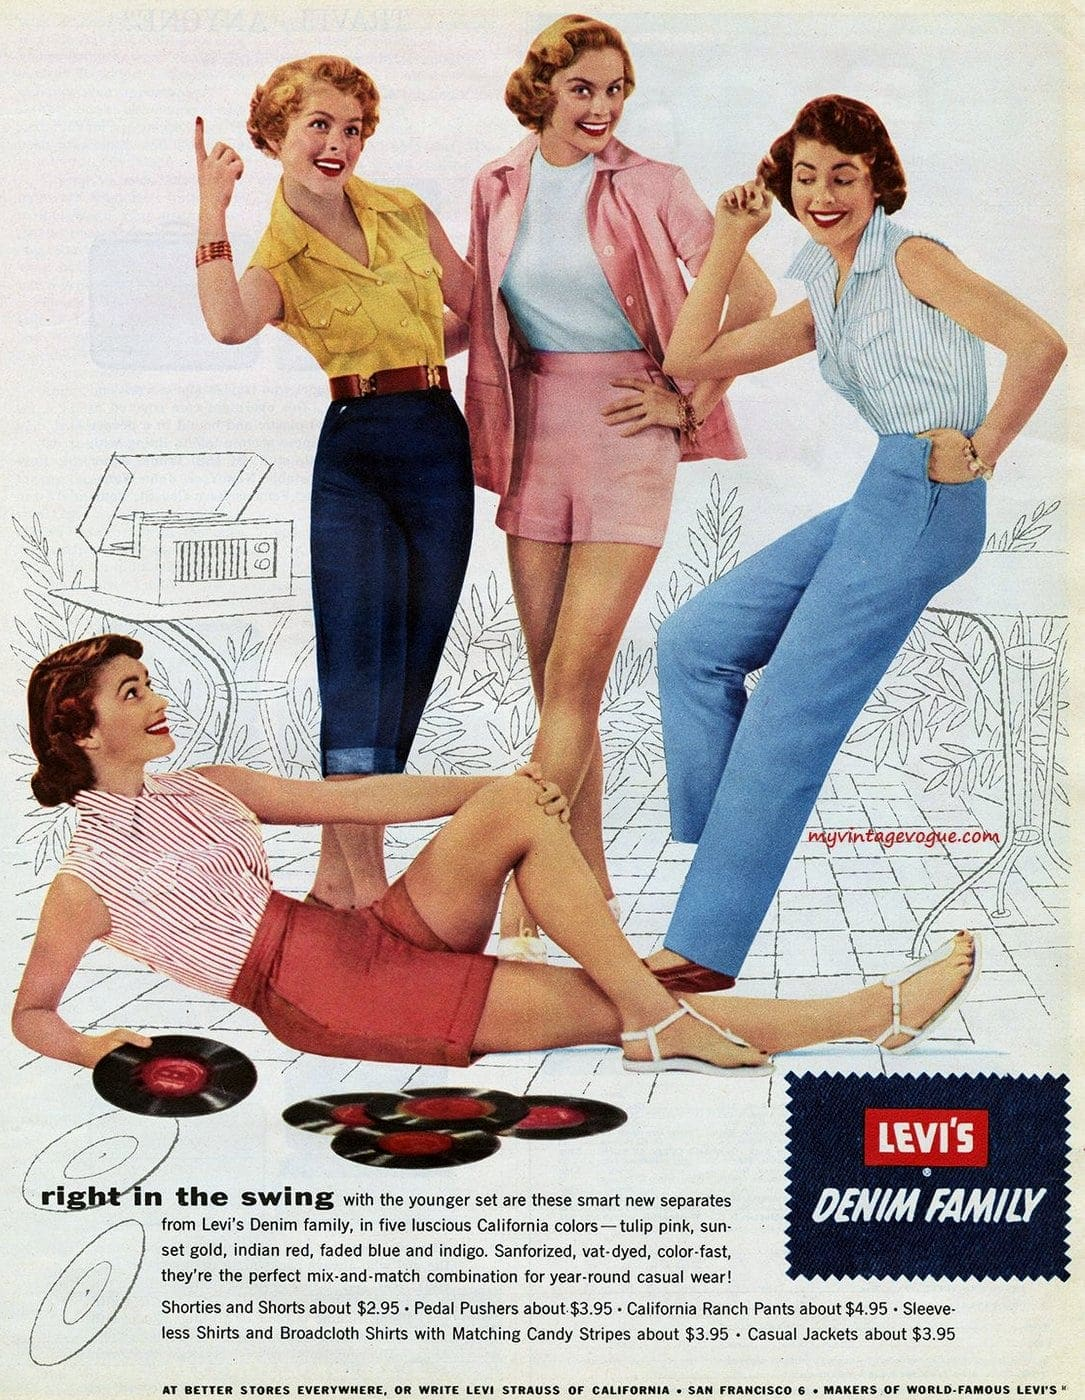 Levi's Denim Family - vintage clothing ad from 1954